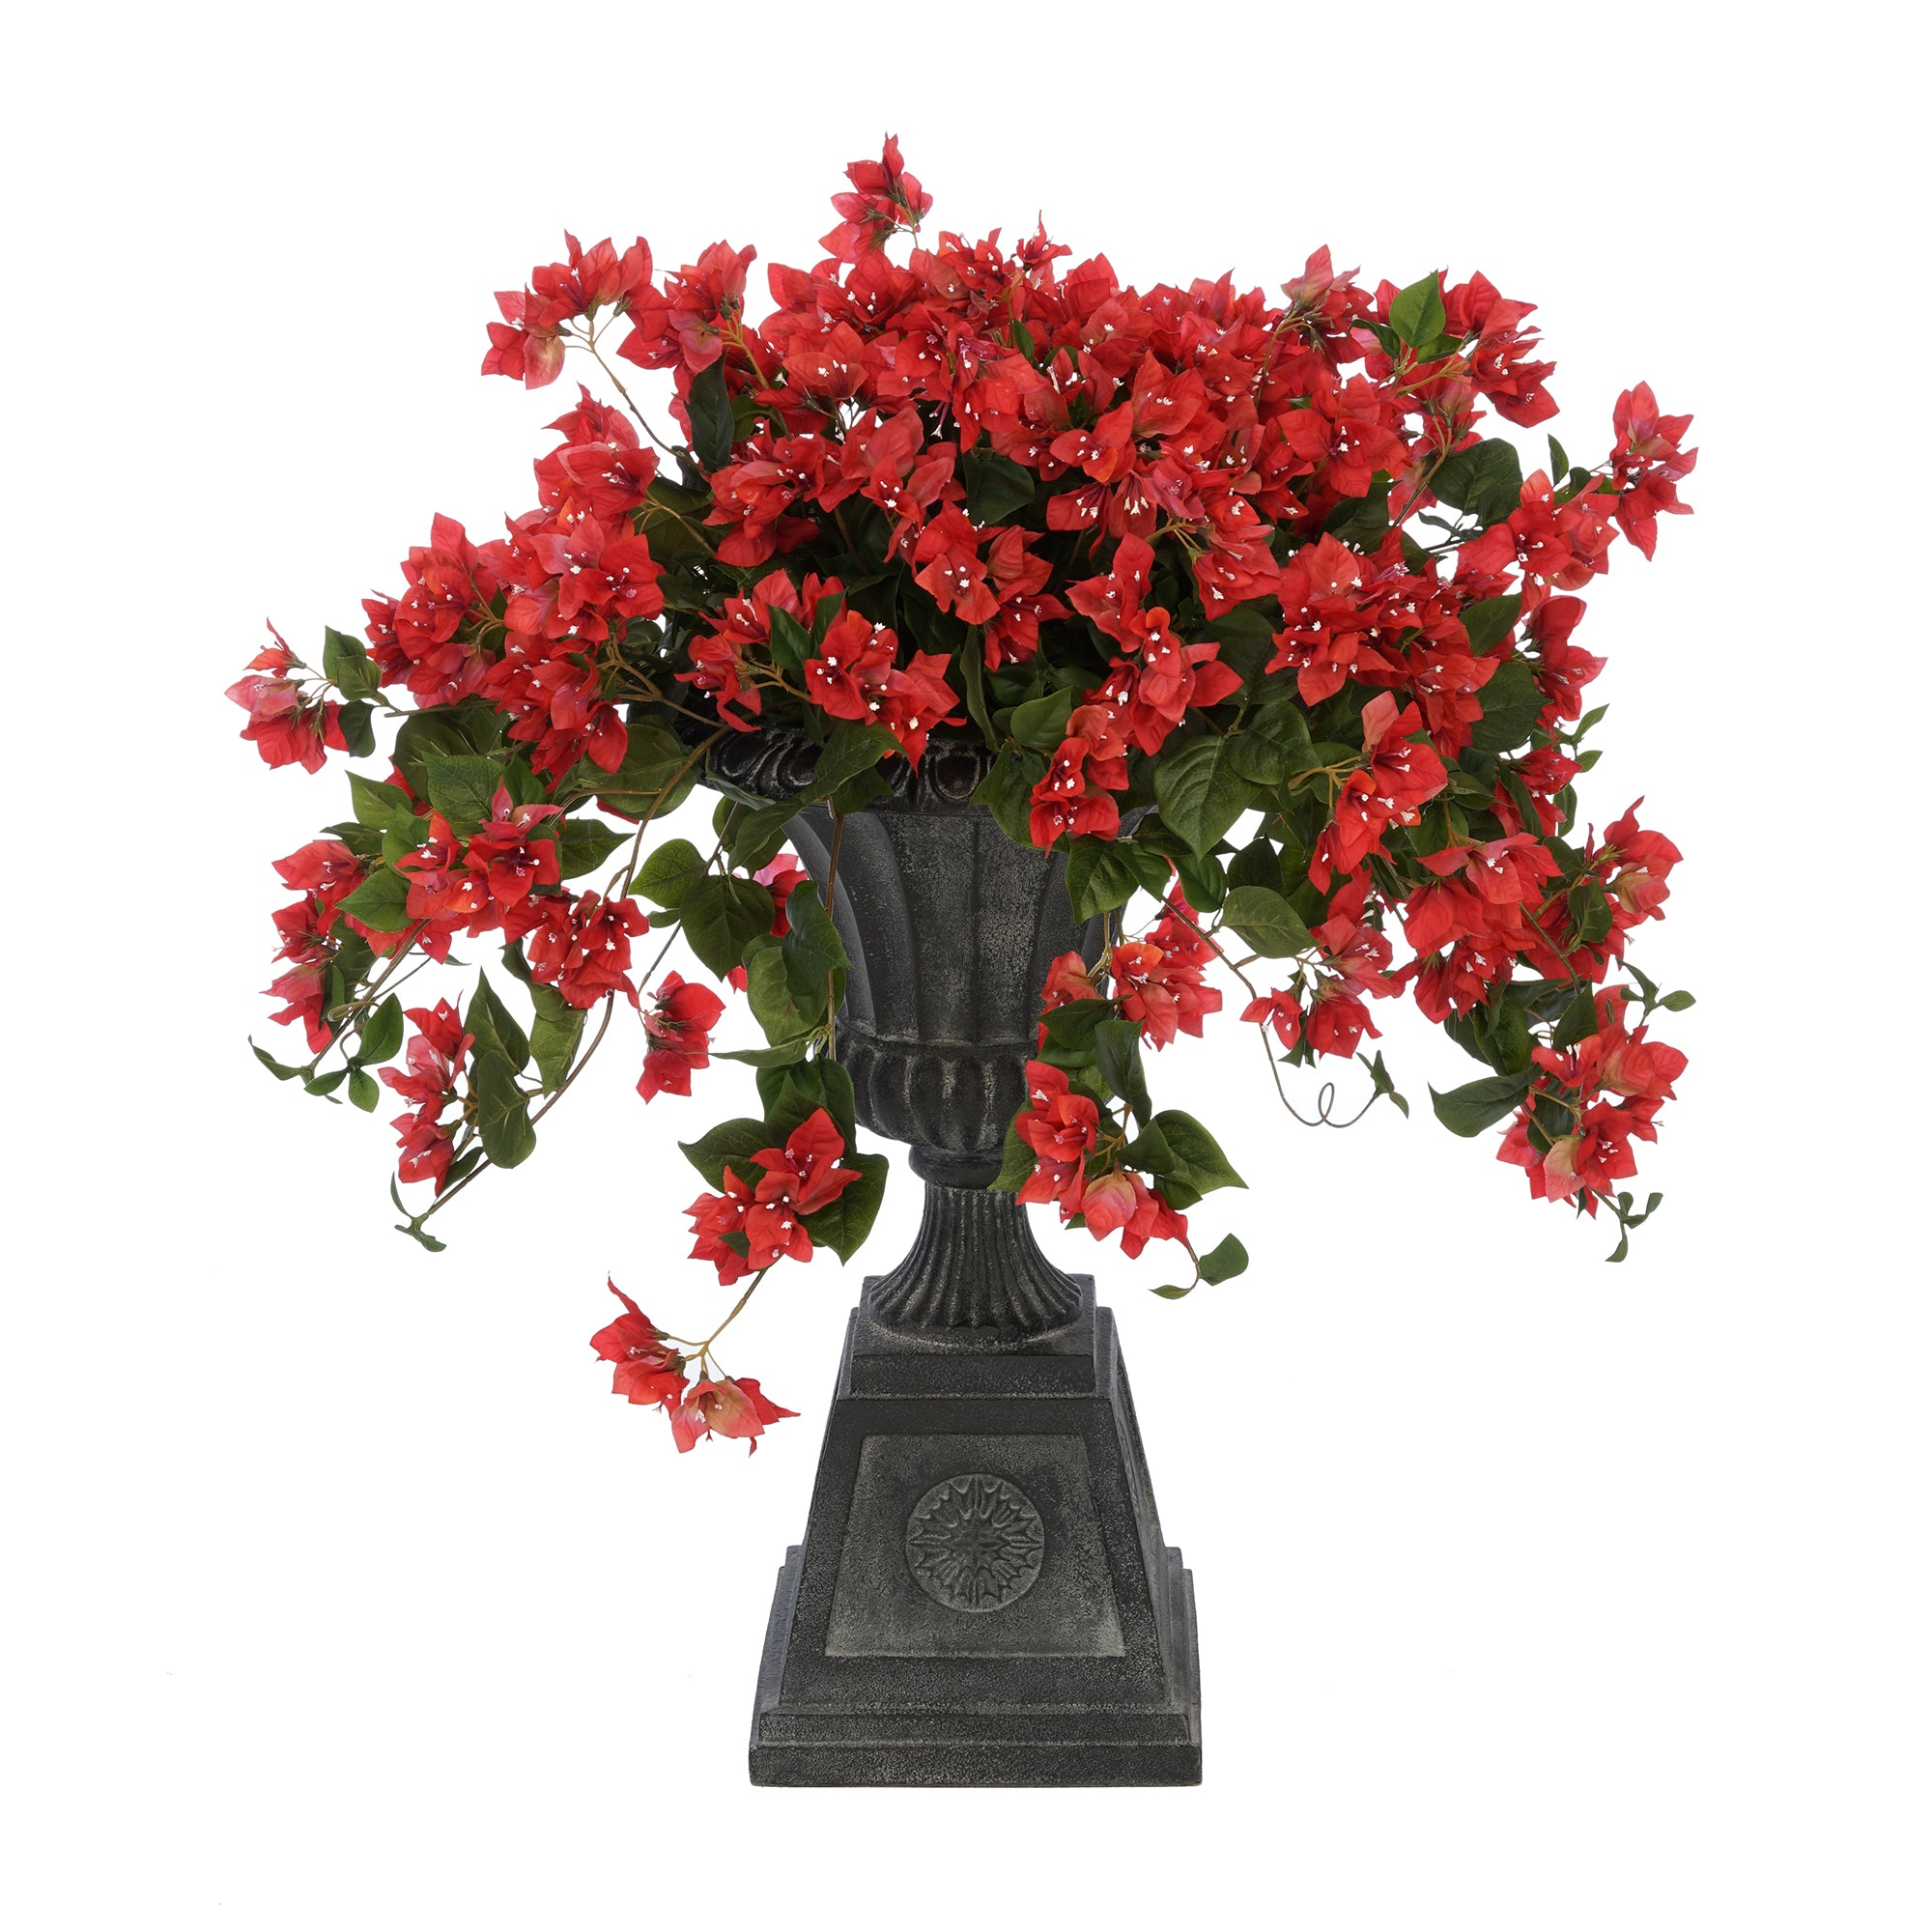 Watermelon Red Bougainvillea Black Footed Tuscan Urn Planter